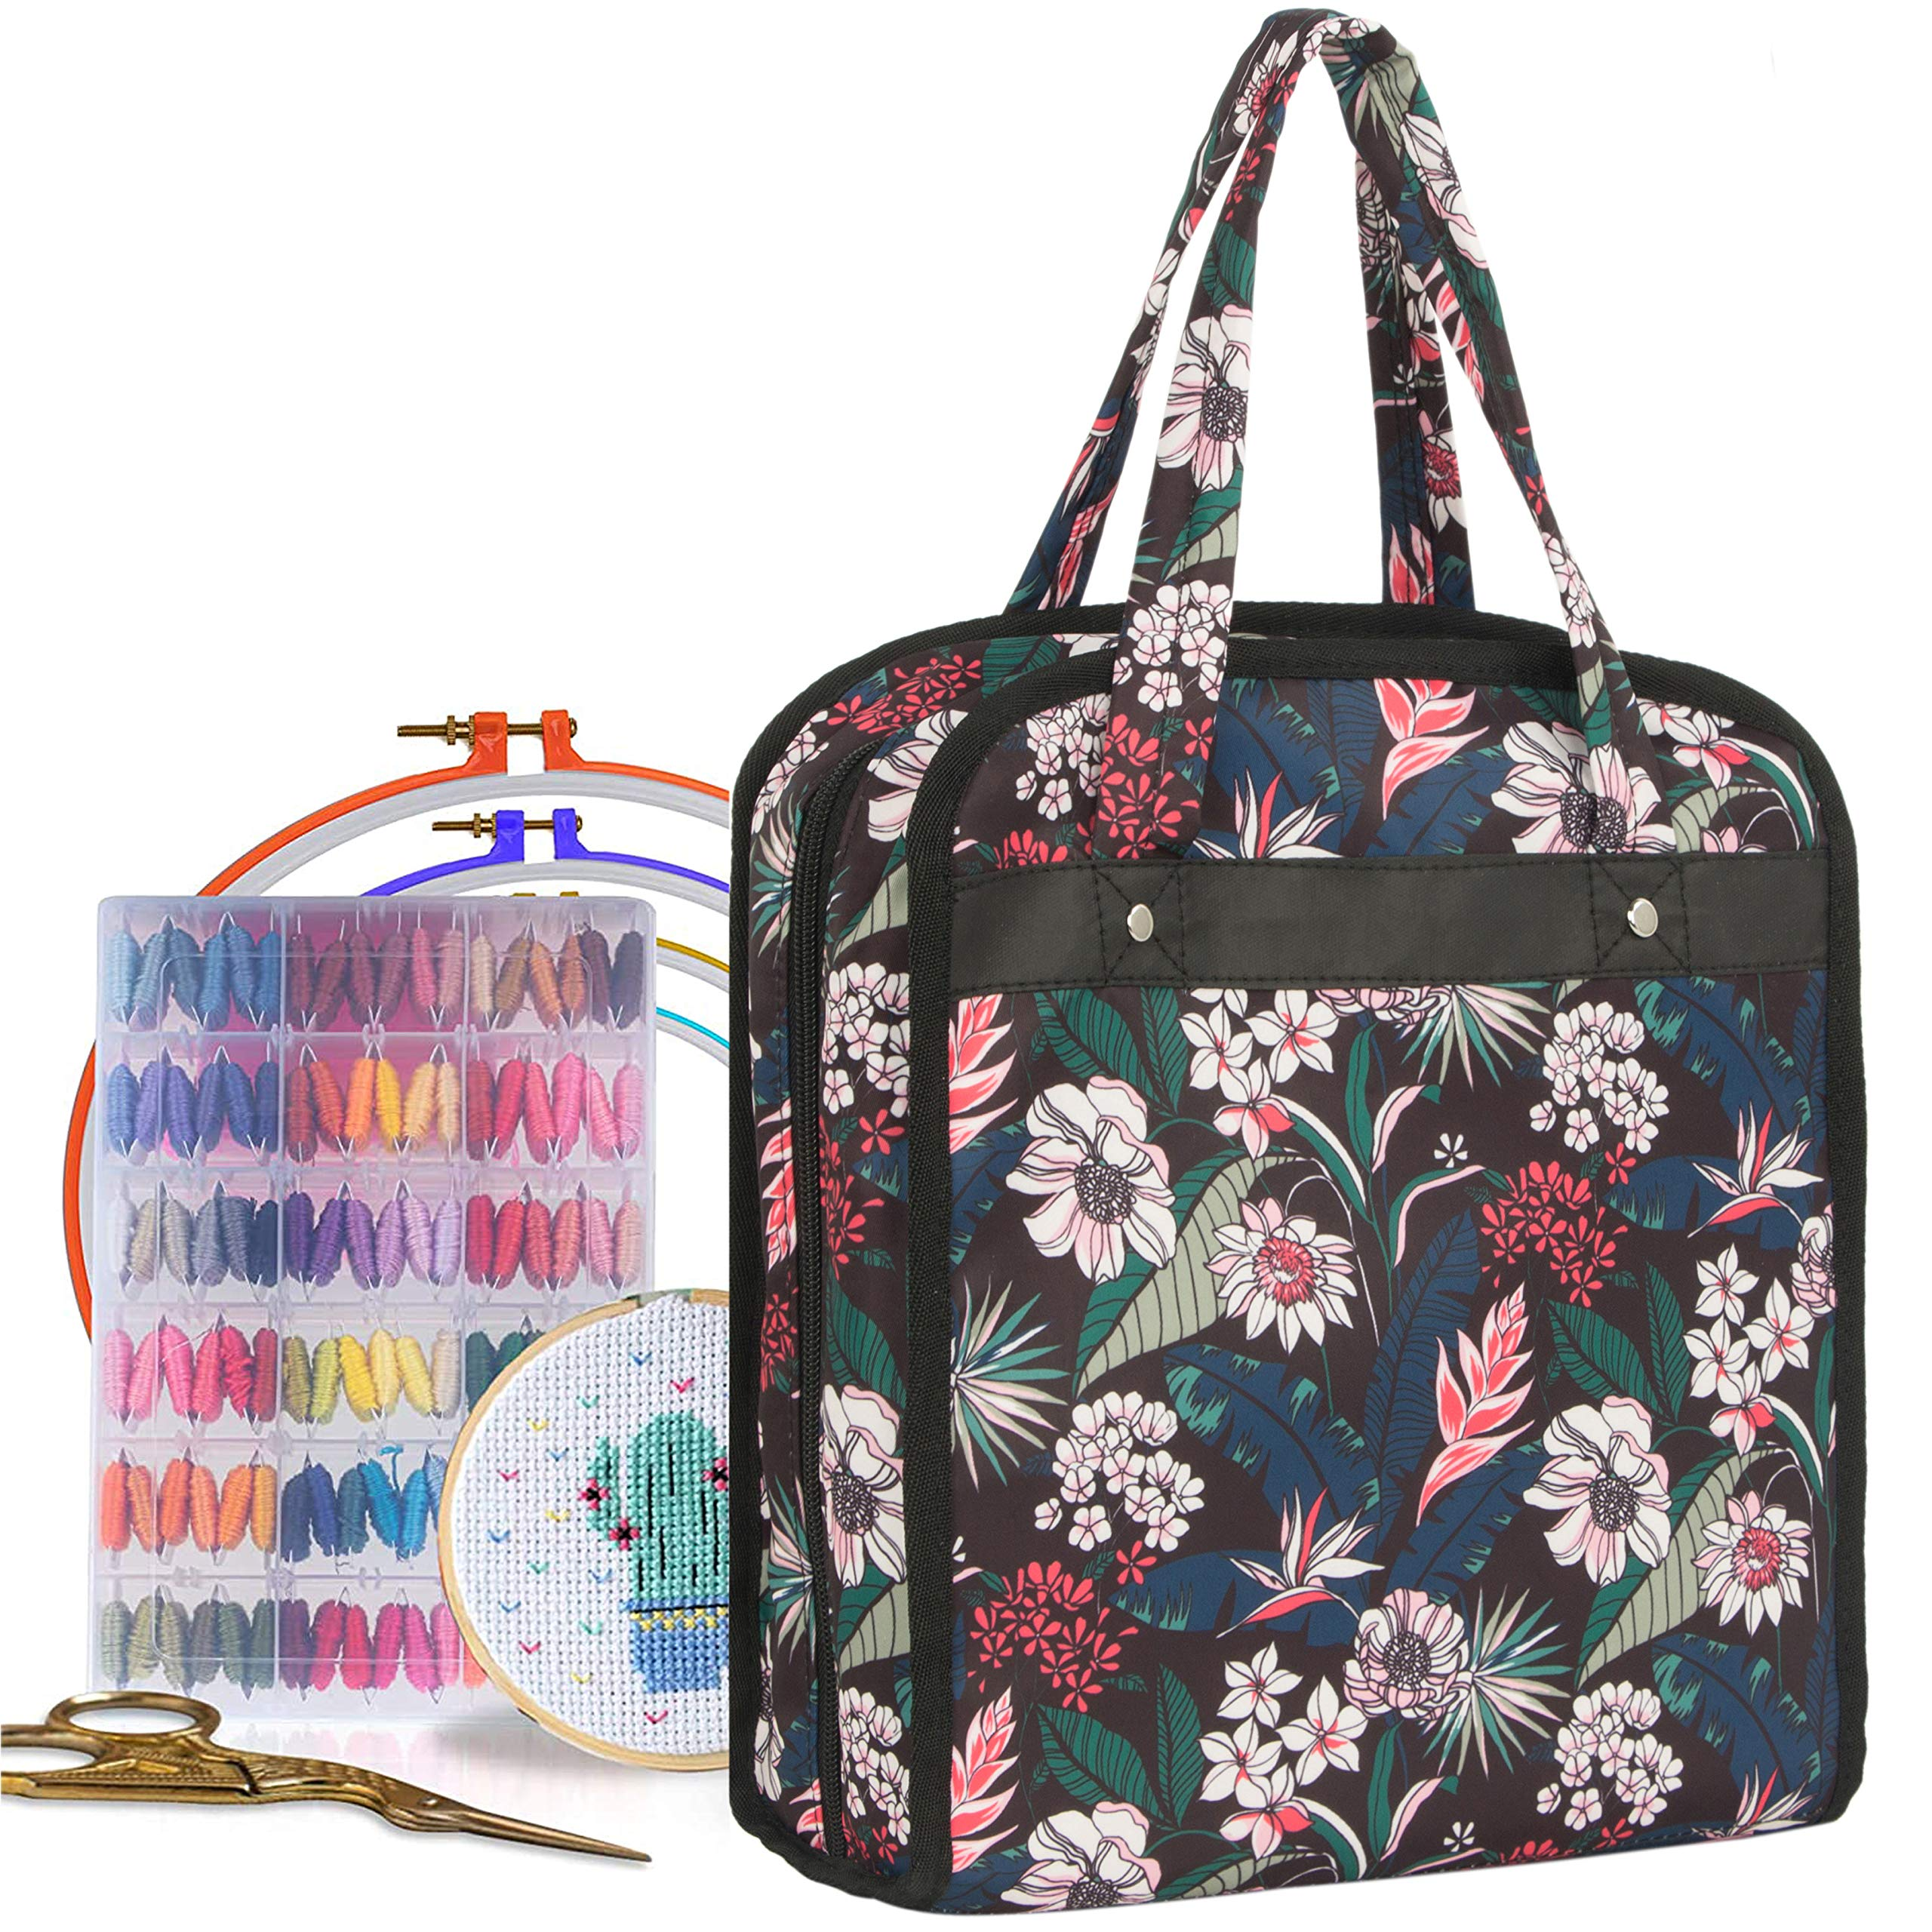 PACMAXI Embroidery Storage Bag, Roomy Embroidery Bag with Multiple Pages for Embroidery Hoops Up to 11.02 inch, Embroidery Floss and Supplies(Bag Only) (Flower with Black)